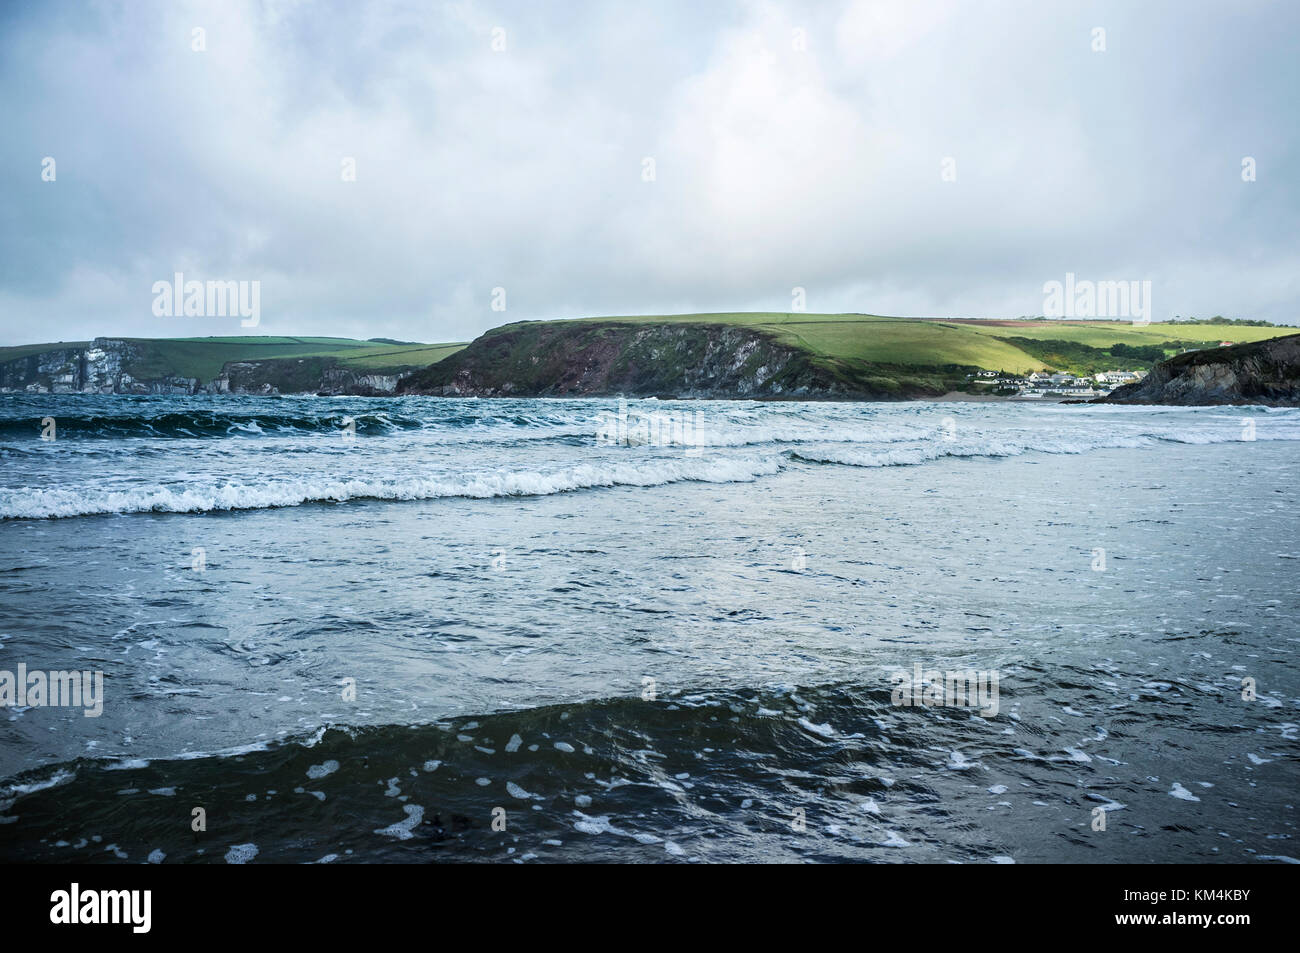 View of wave patterns in shallow choppy water, from the sea shore. Headland and coastline. - Stock Image